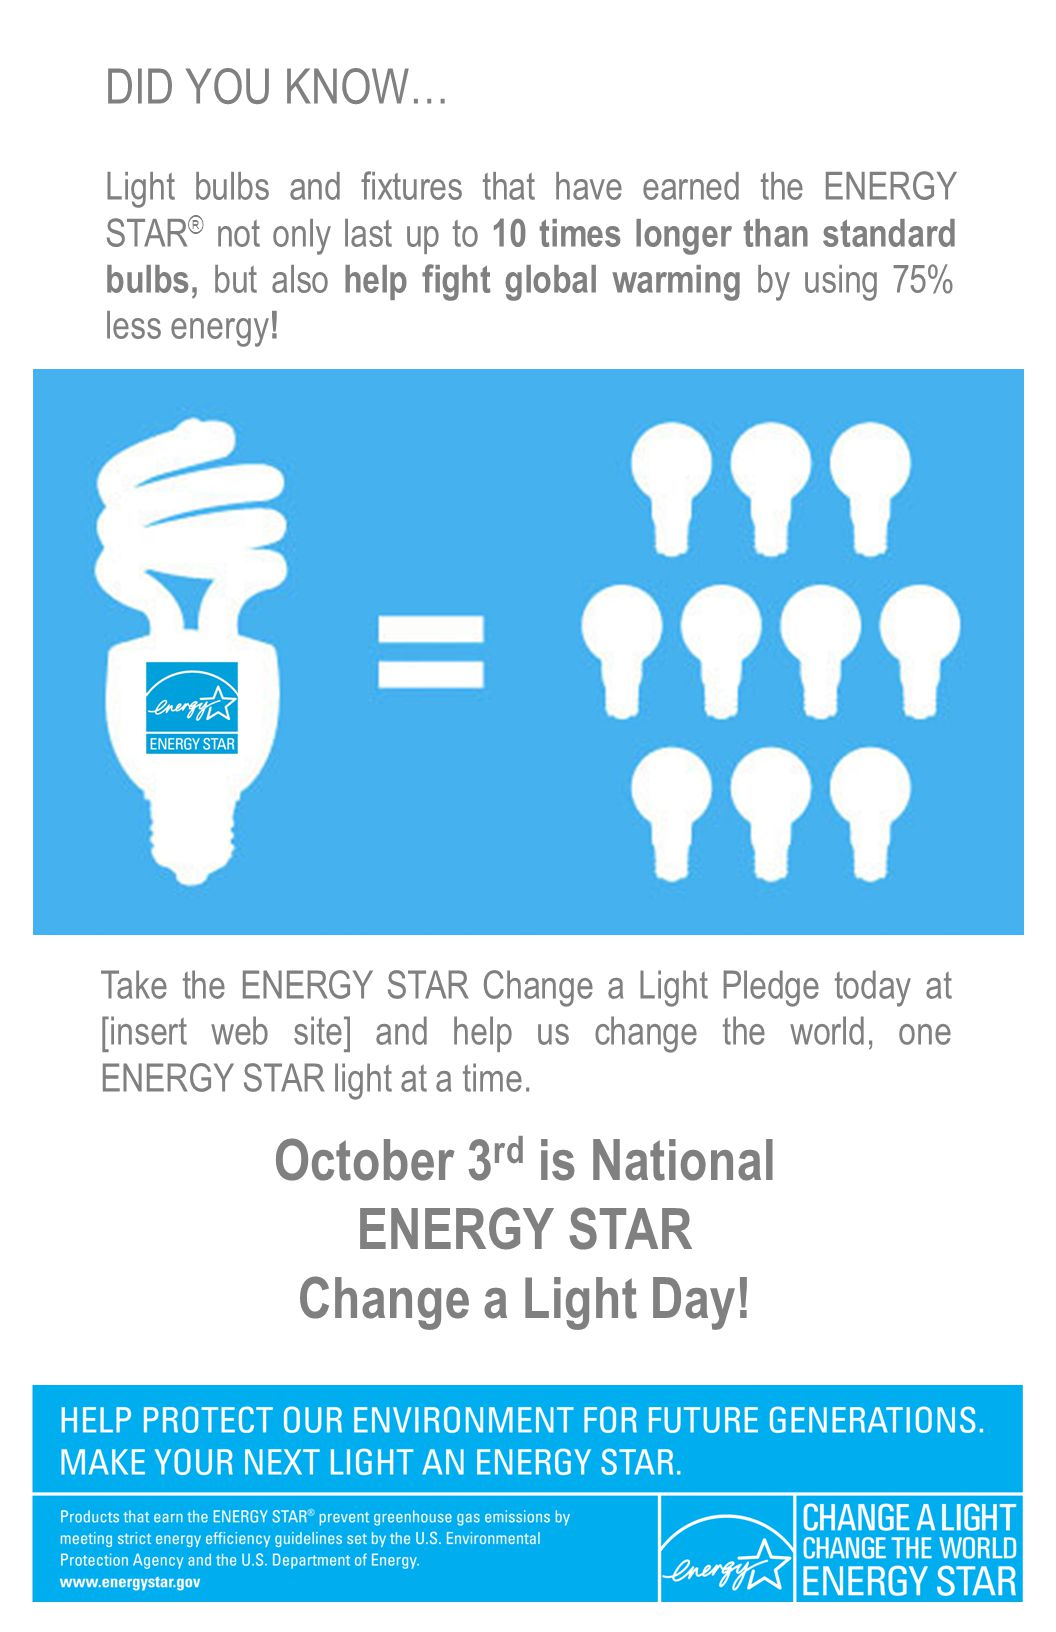 DID YOU KNOW… Light bulbs and fixtures that have earned the ENERGY STAR ® not only last up to 10 times longer than standard bulbs, but also help fight